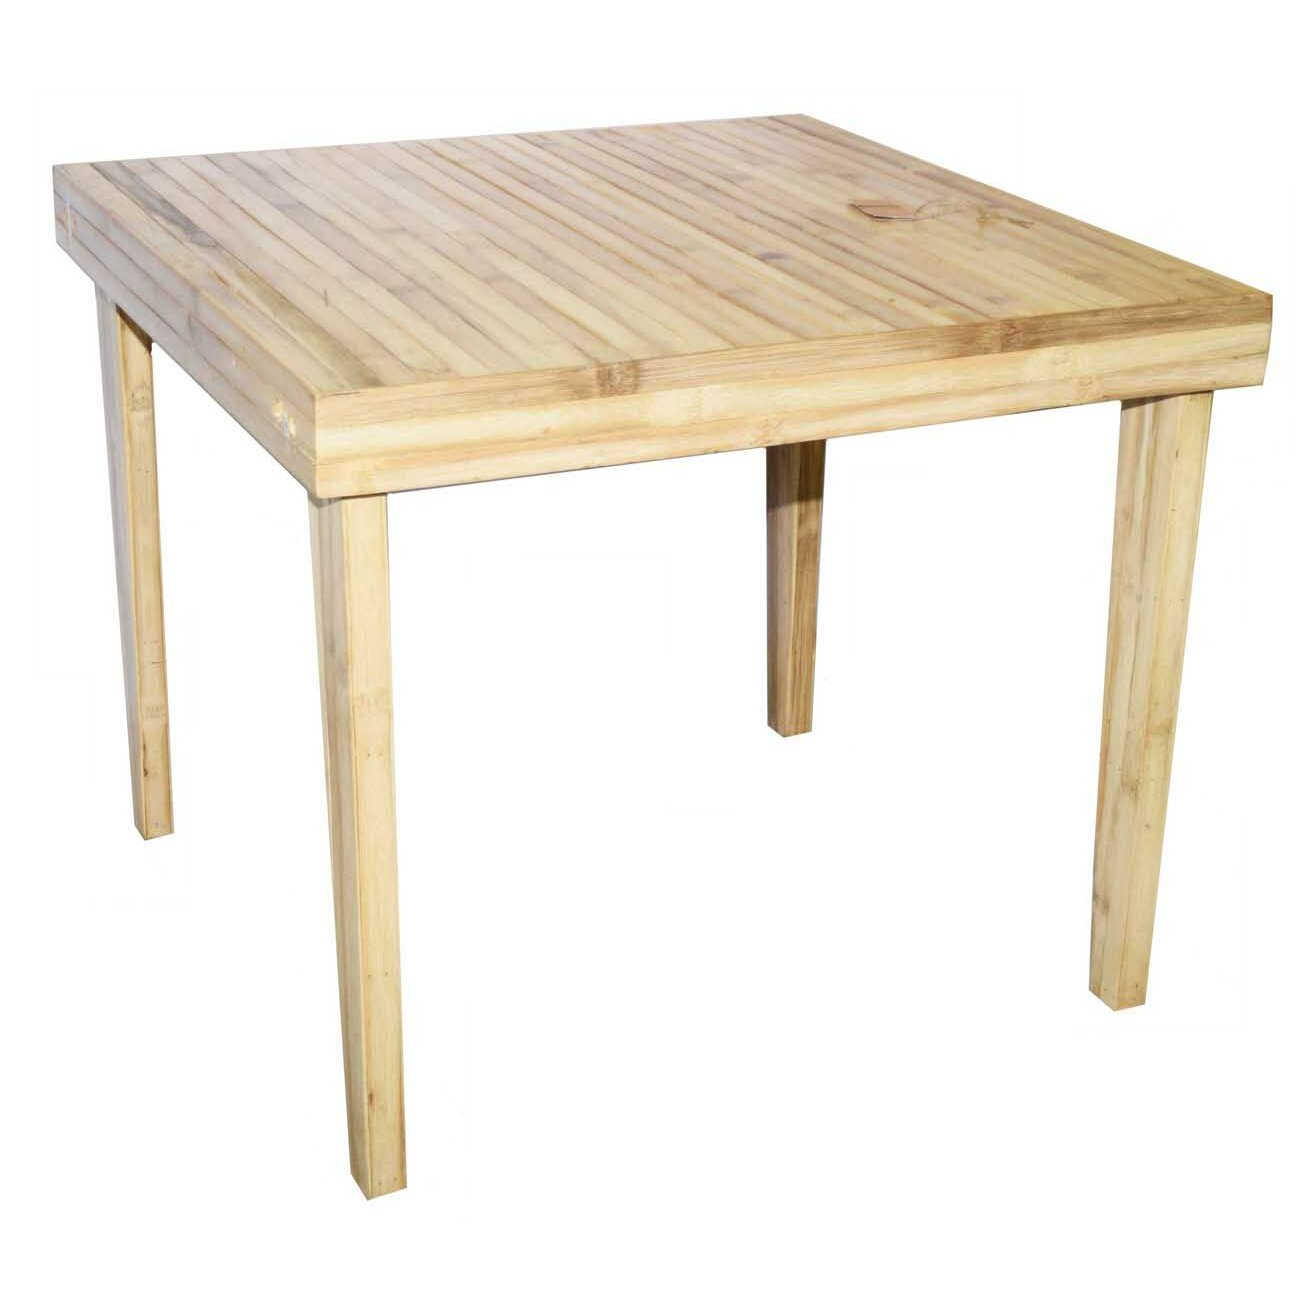 Bamboo54 baroque dining table wayfair for Baroque dining table set